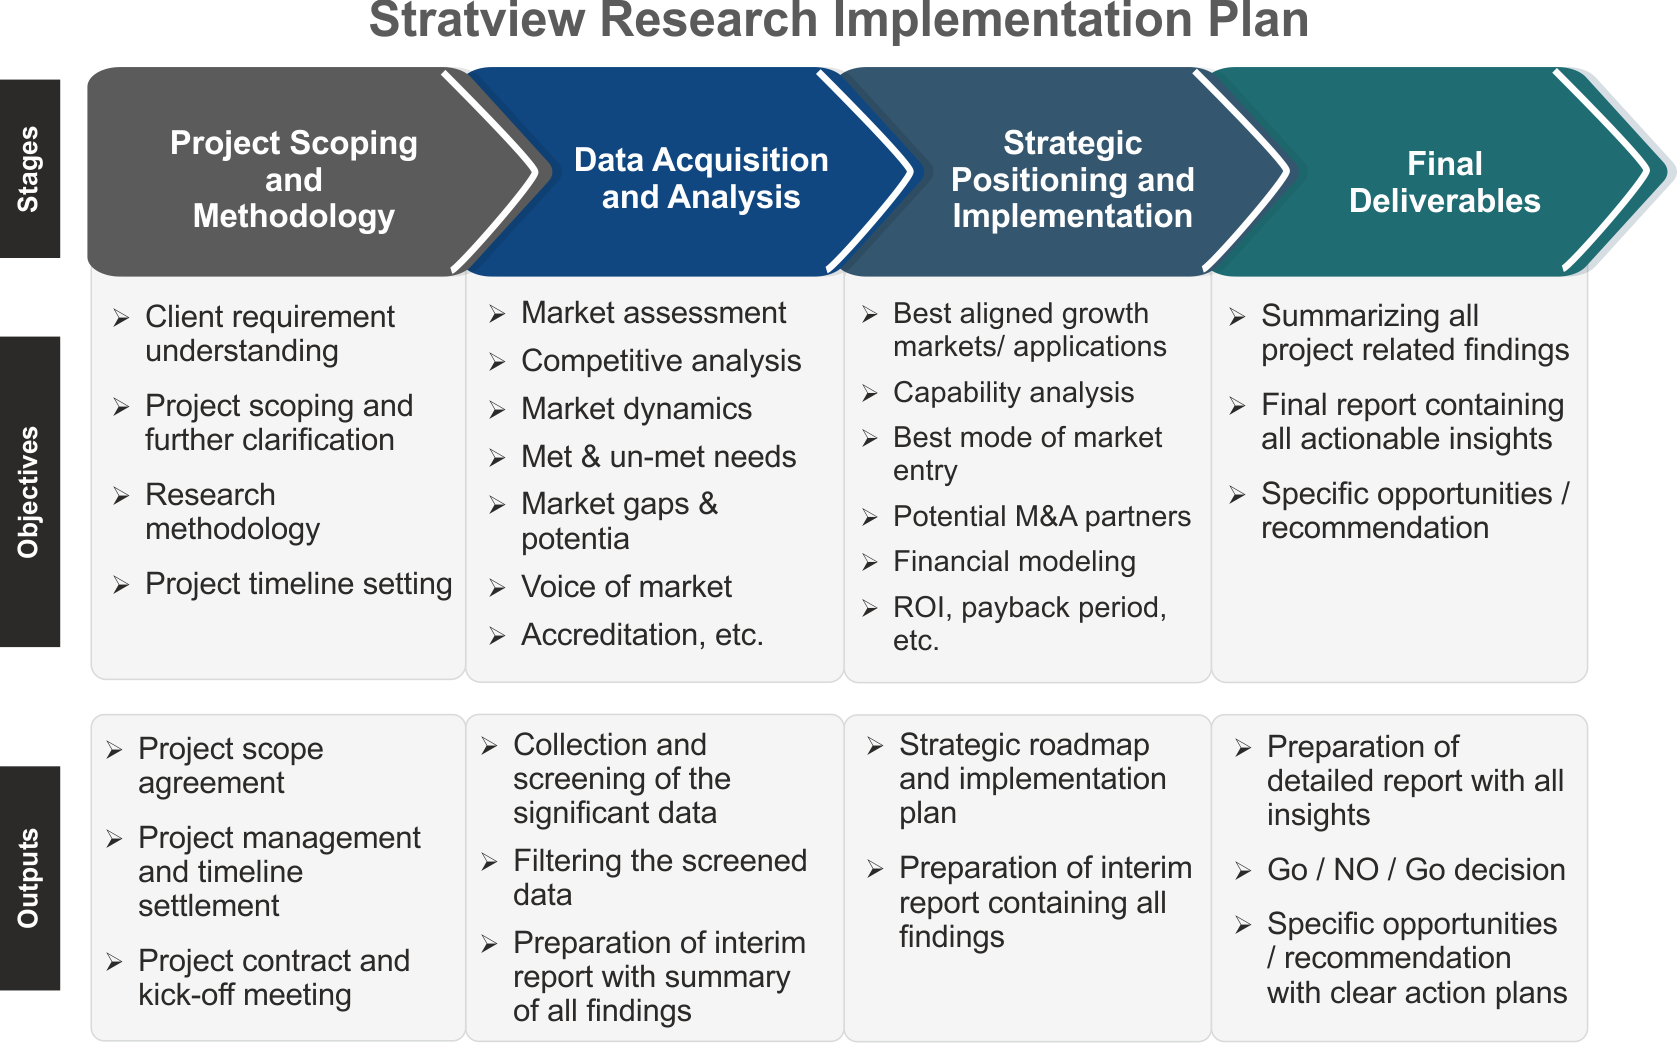 stratview research implementation plan